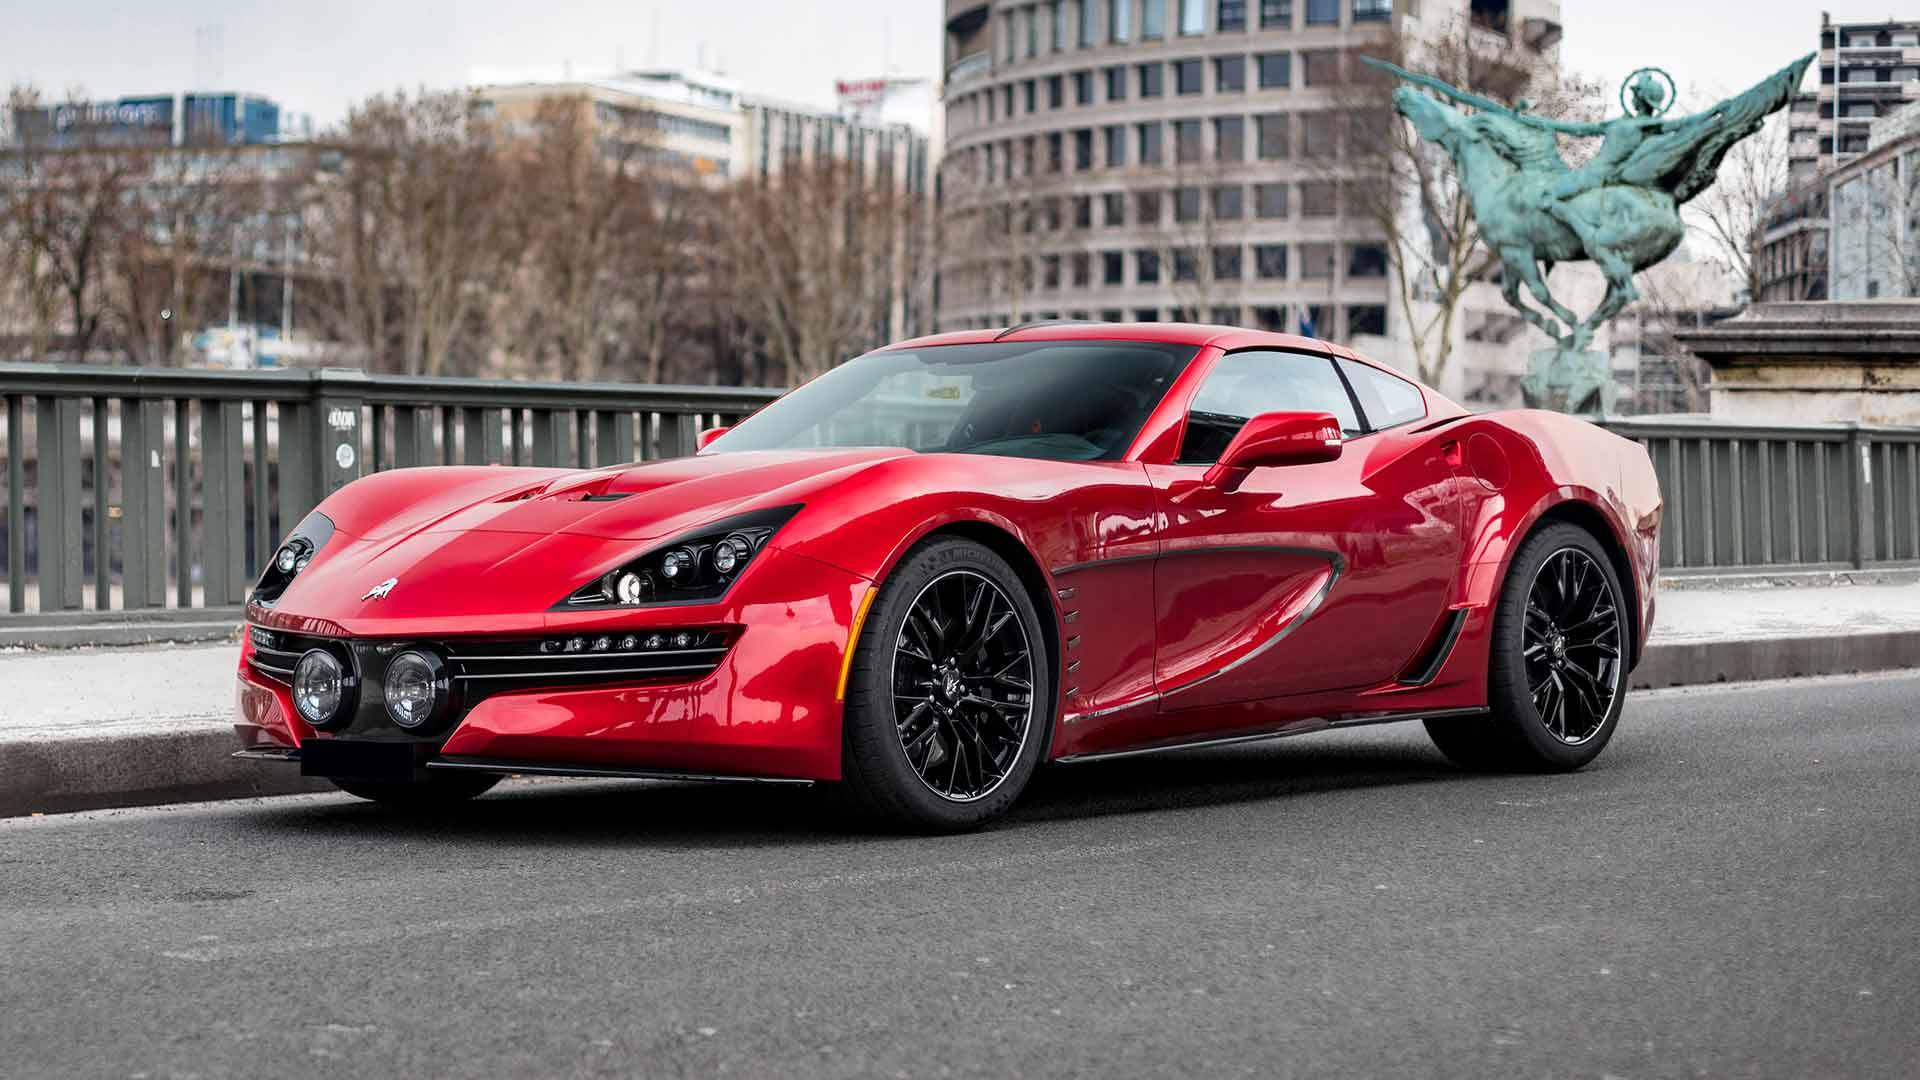 C7 Corvette-based Equus Throwback Limited To 25 Units, Starts At $130,000 - autoevolution